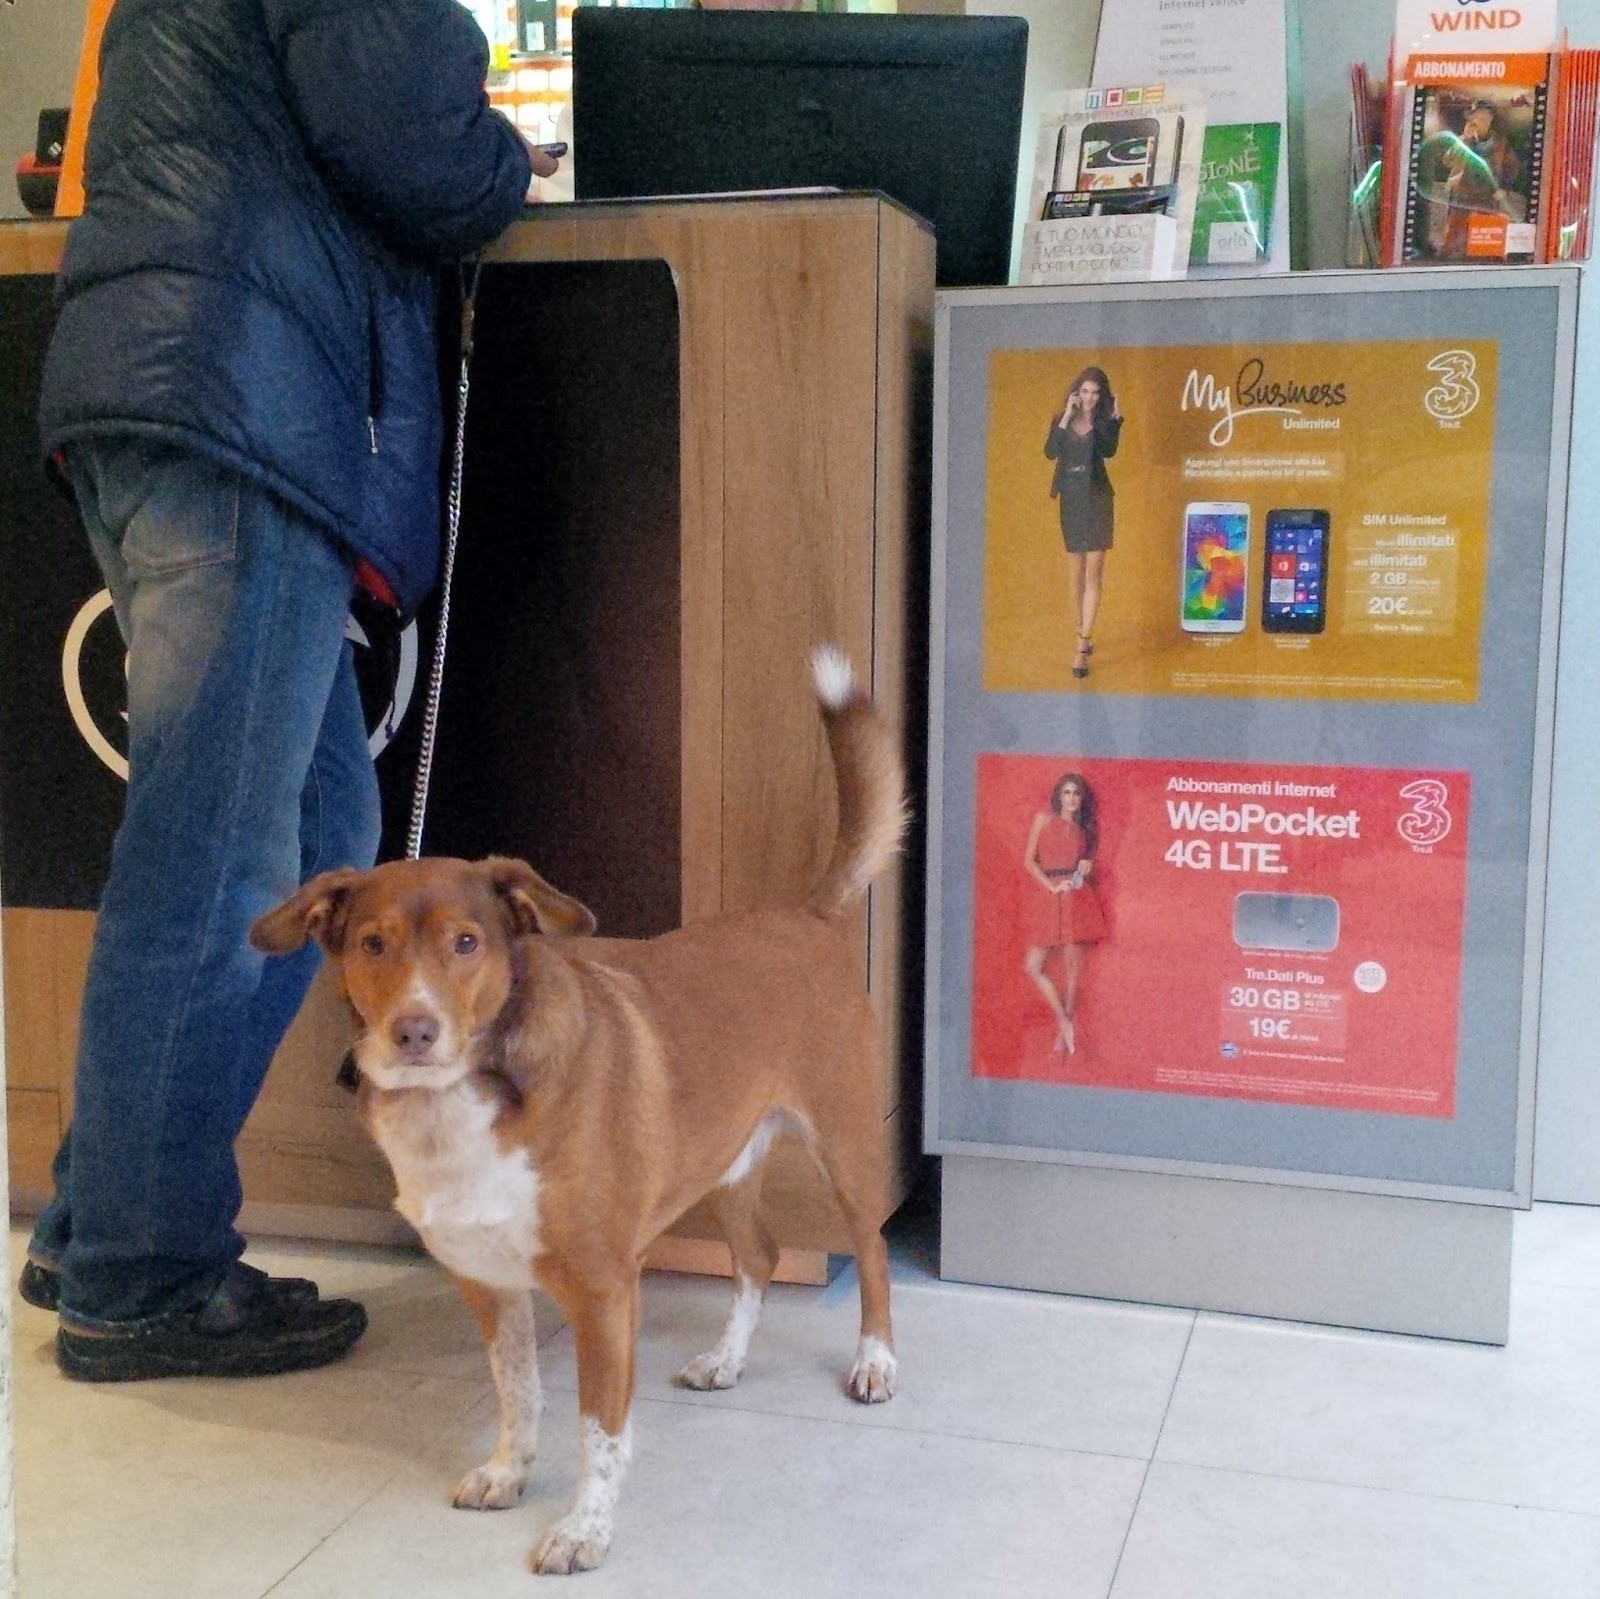 A dog with his master in a local phone shop